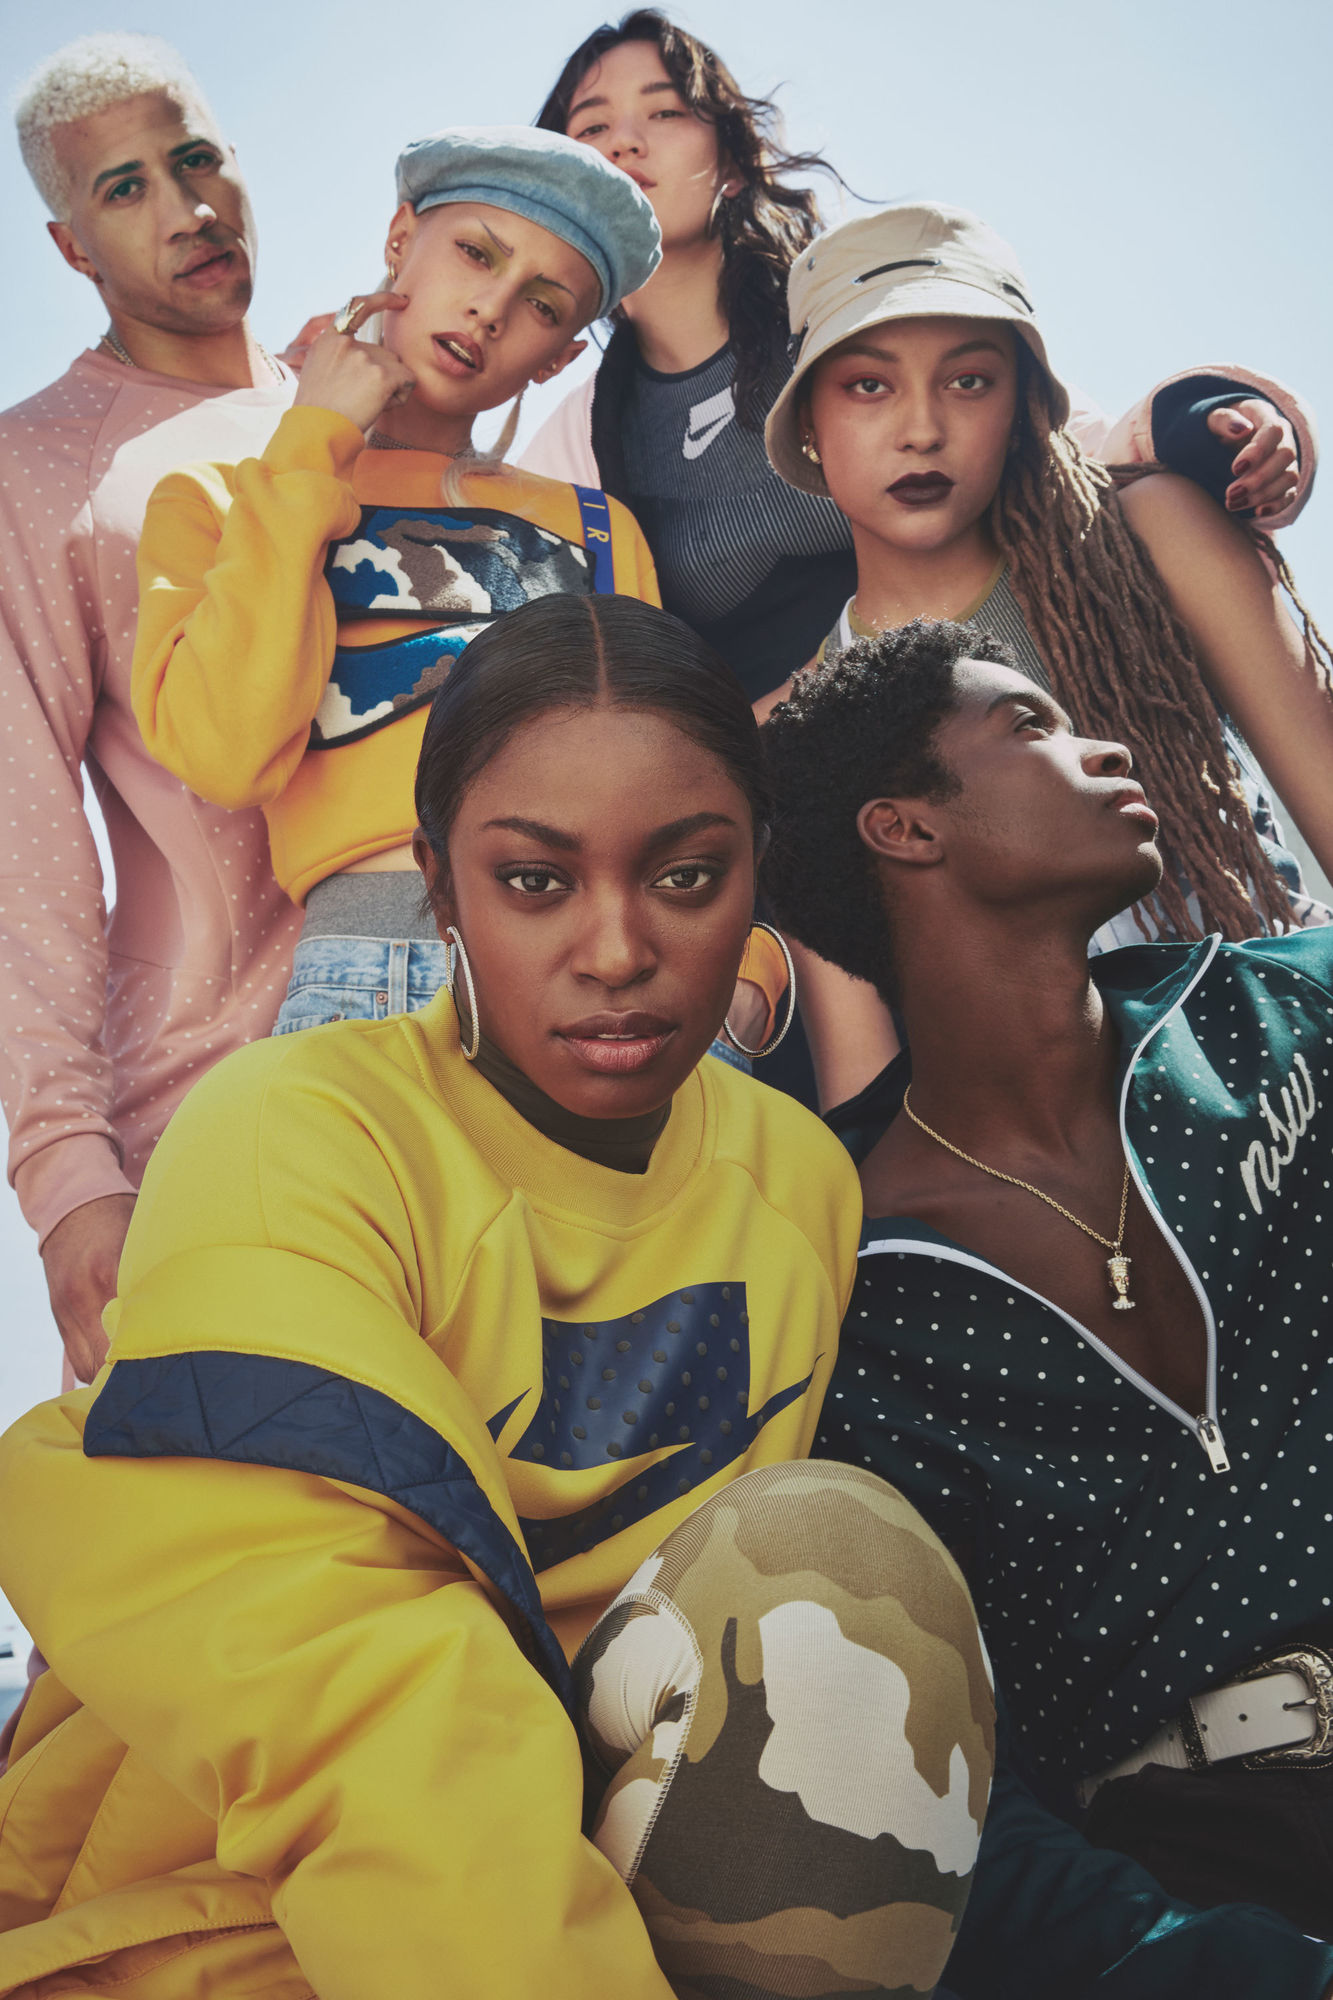 Nike launched their newest campaign for the NSW Tech Pack Collection with Sloane Stephens, photographed by Micaiah Carter c/o GIANT ARTISTS